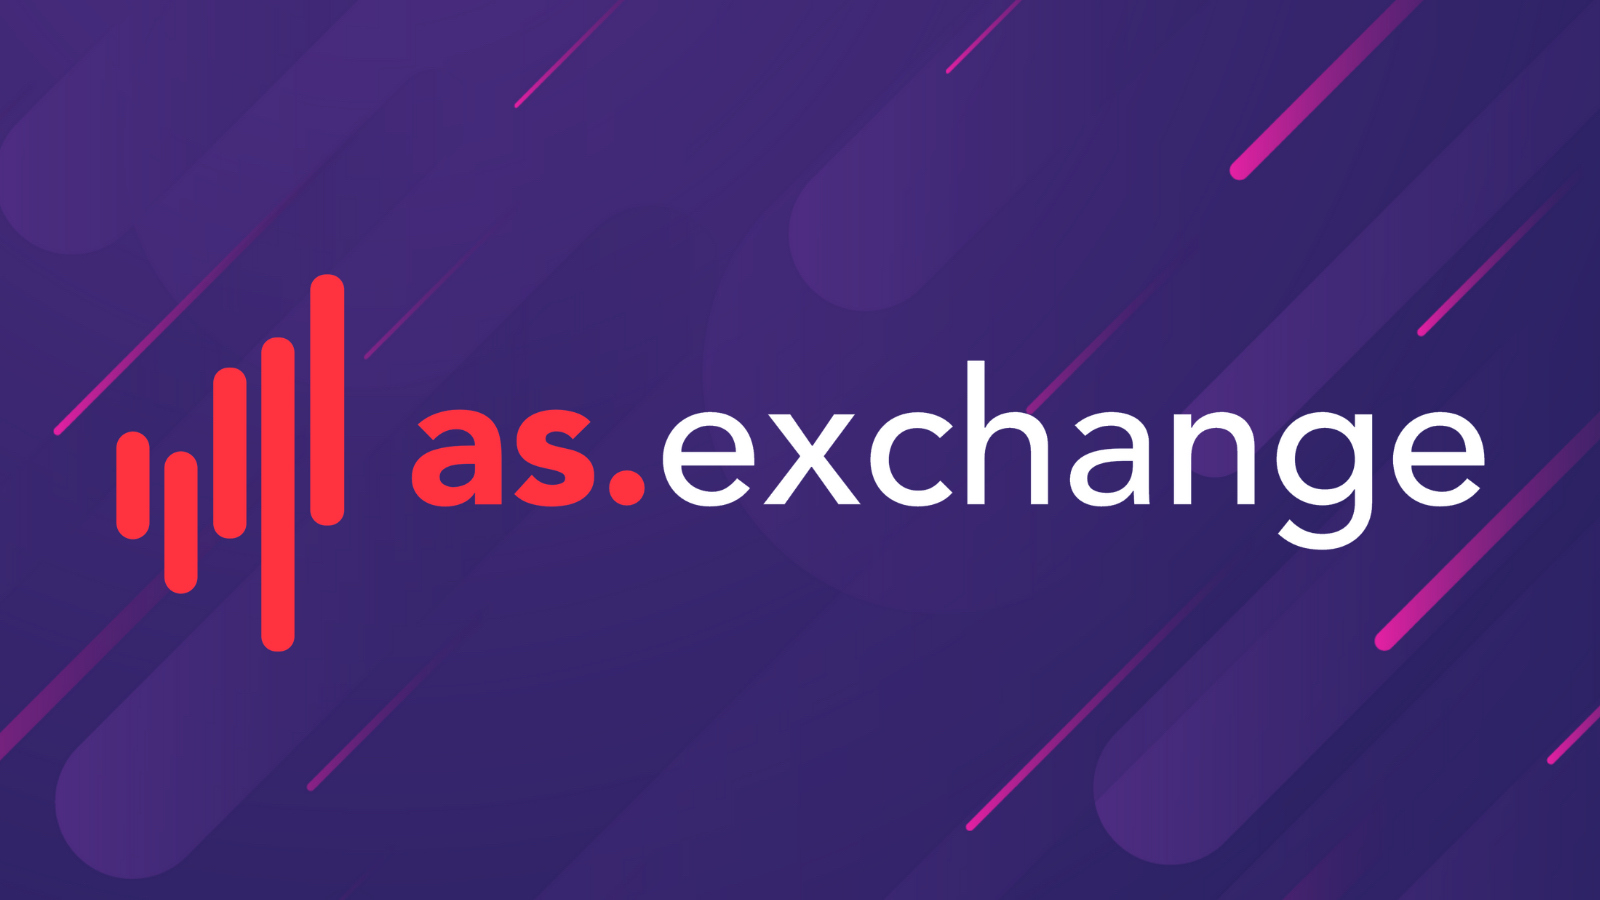 as.exchange: Innovative Derivatives Exchange is Launched – Now Traders Can Diversify Returns Within Single Asset